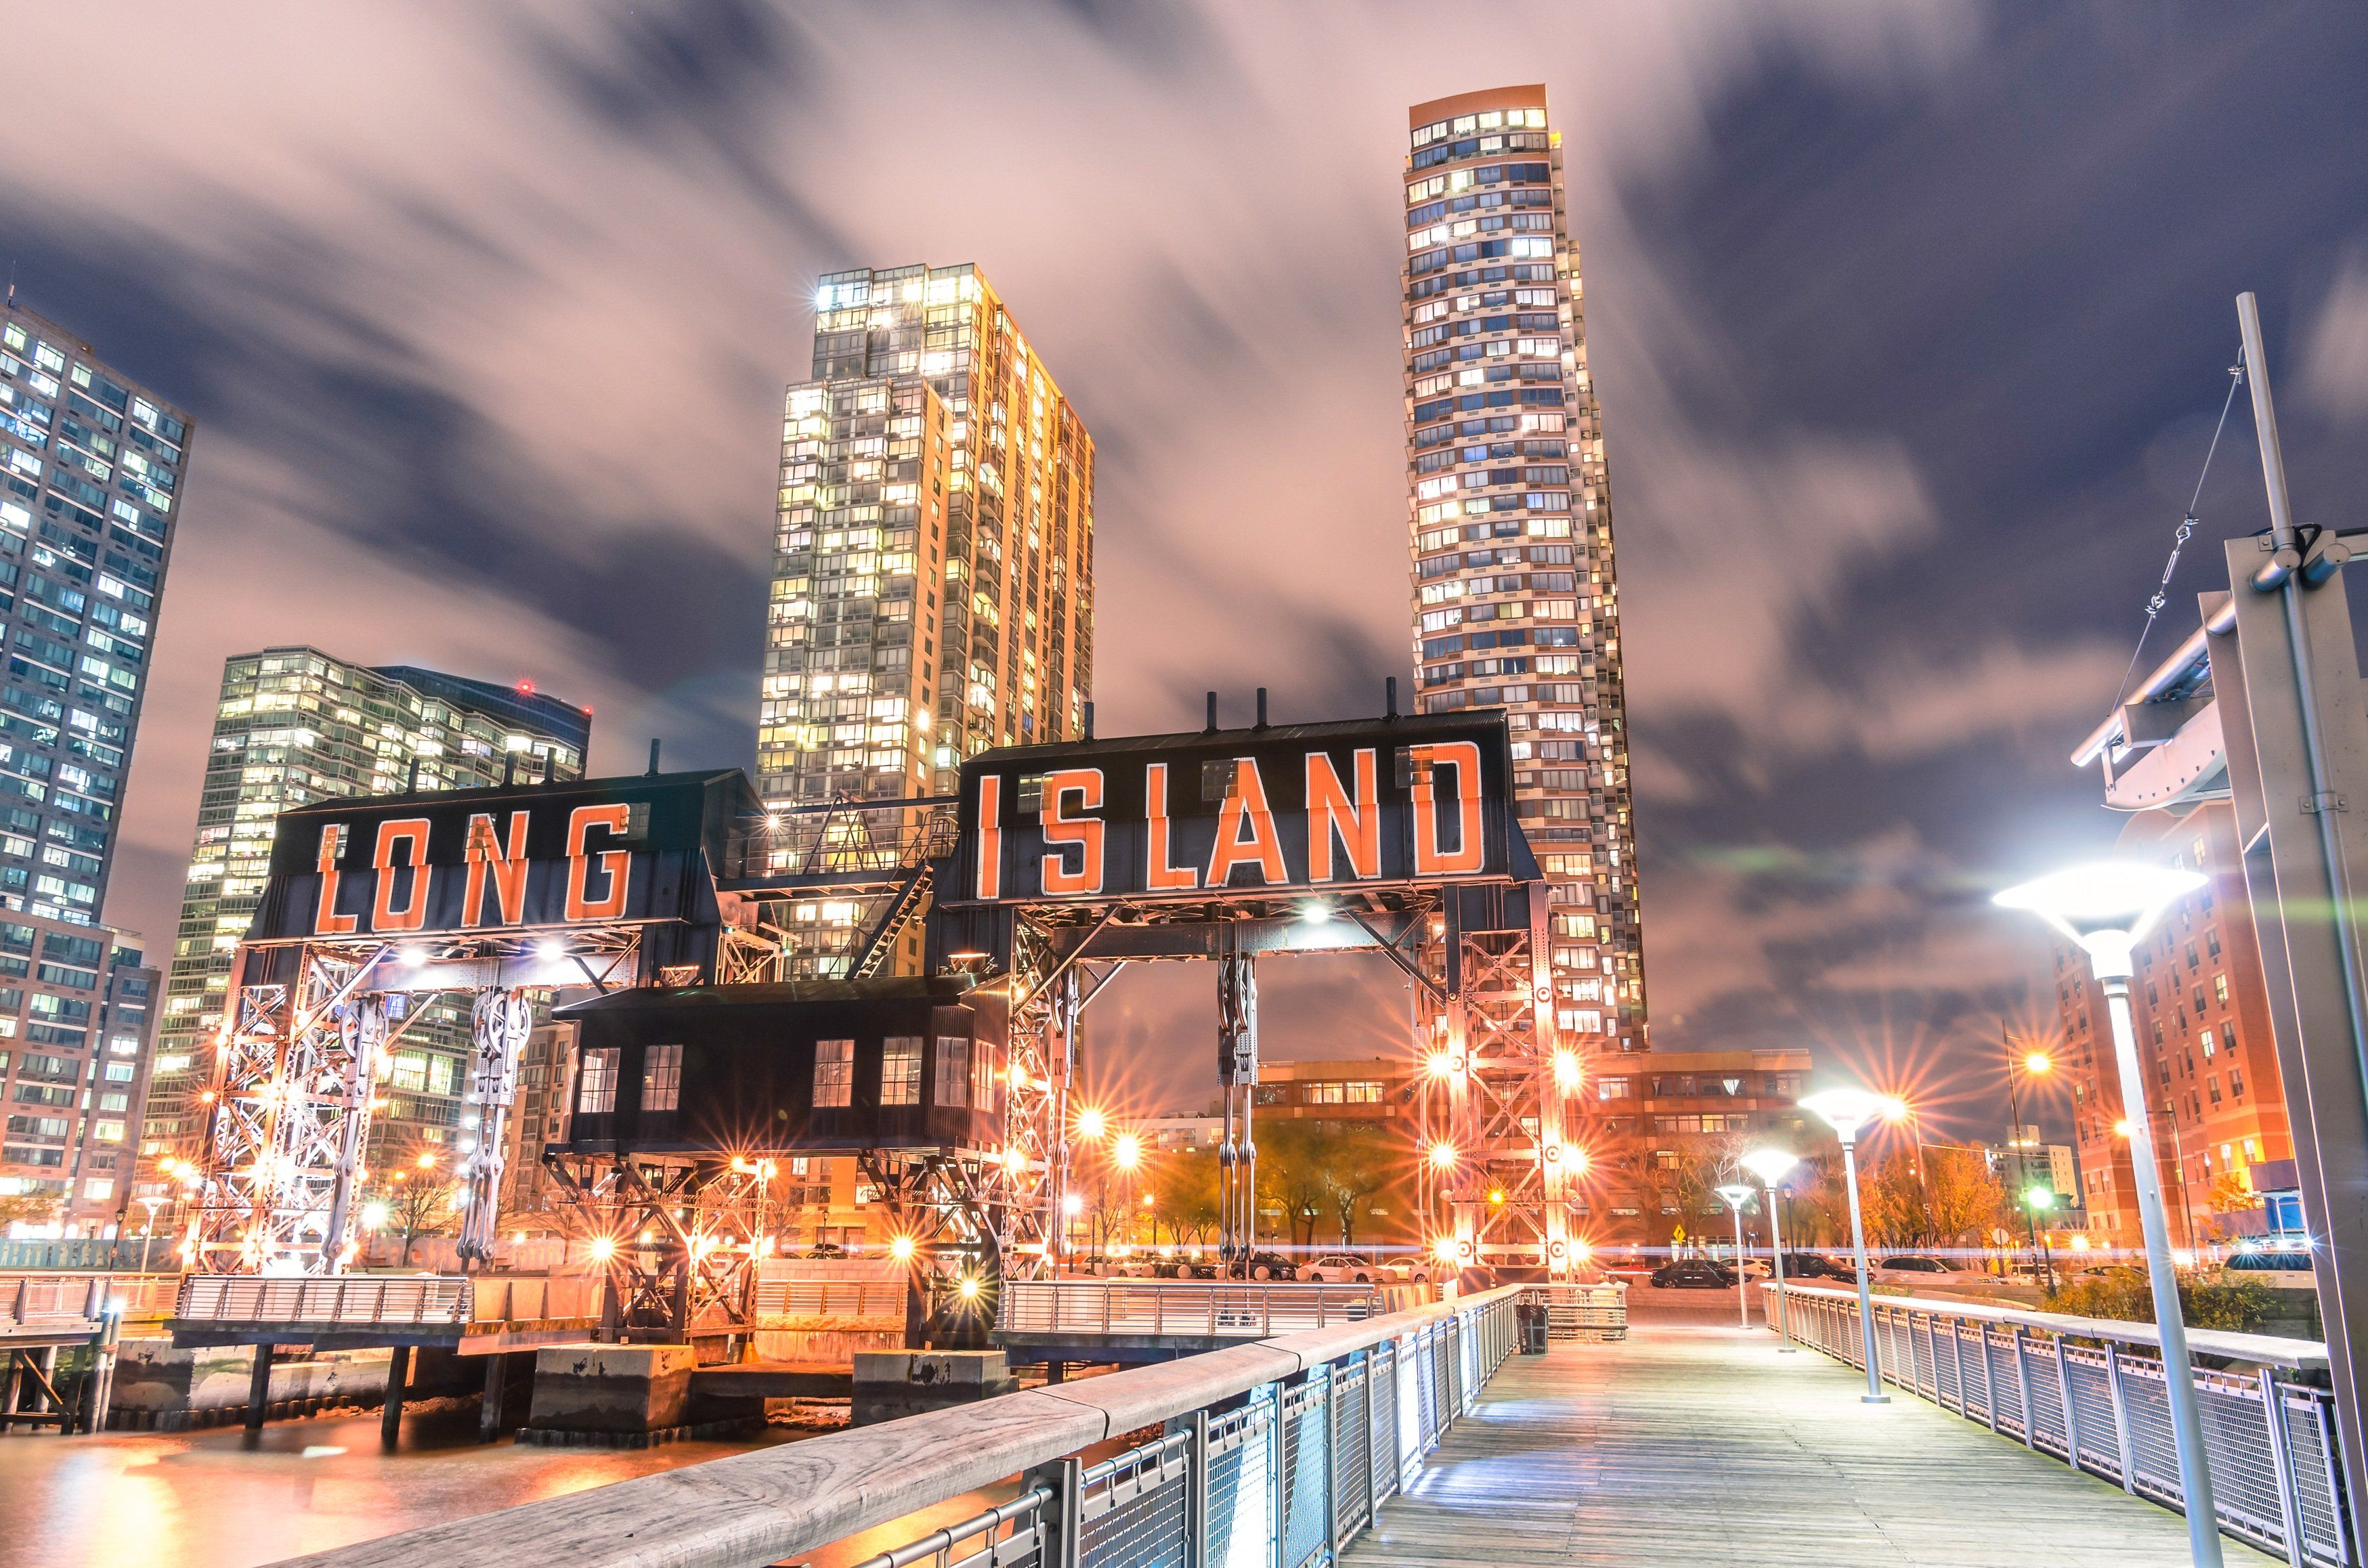 Long Island accounts for around one-third of New York's installed solar capacity.